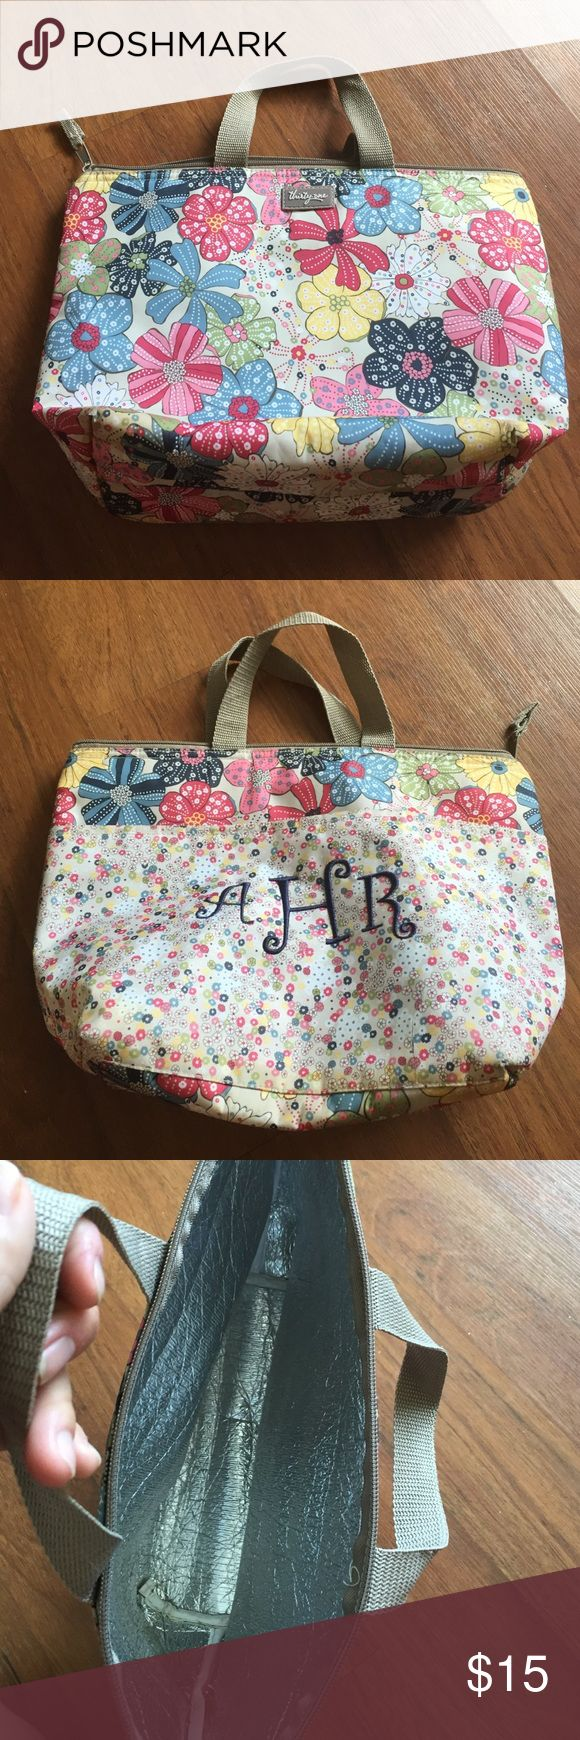 Thirty one small thermal lunch bag This is a floral thirty one lunch bag in excellent condition. It just has the initials AHR on it which can be taken out. Thirty one Bags Totes